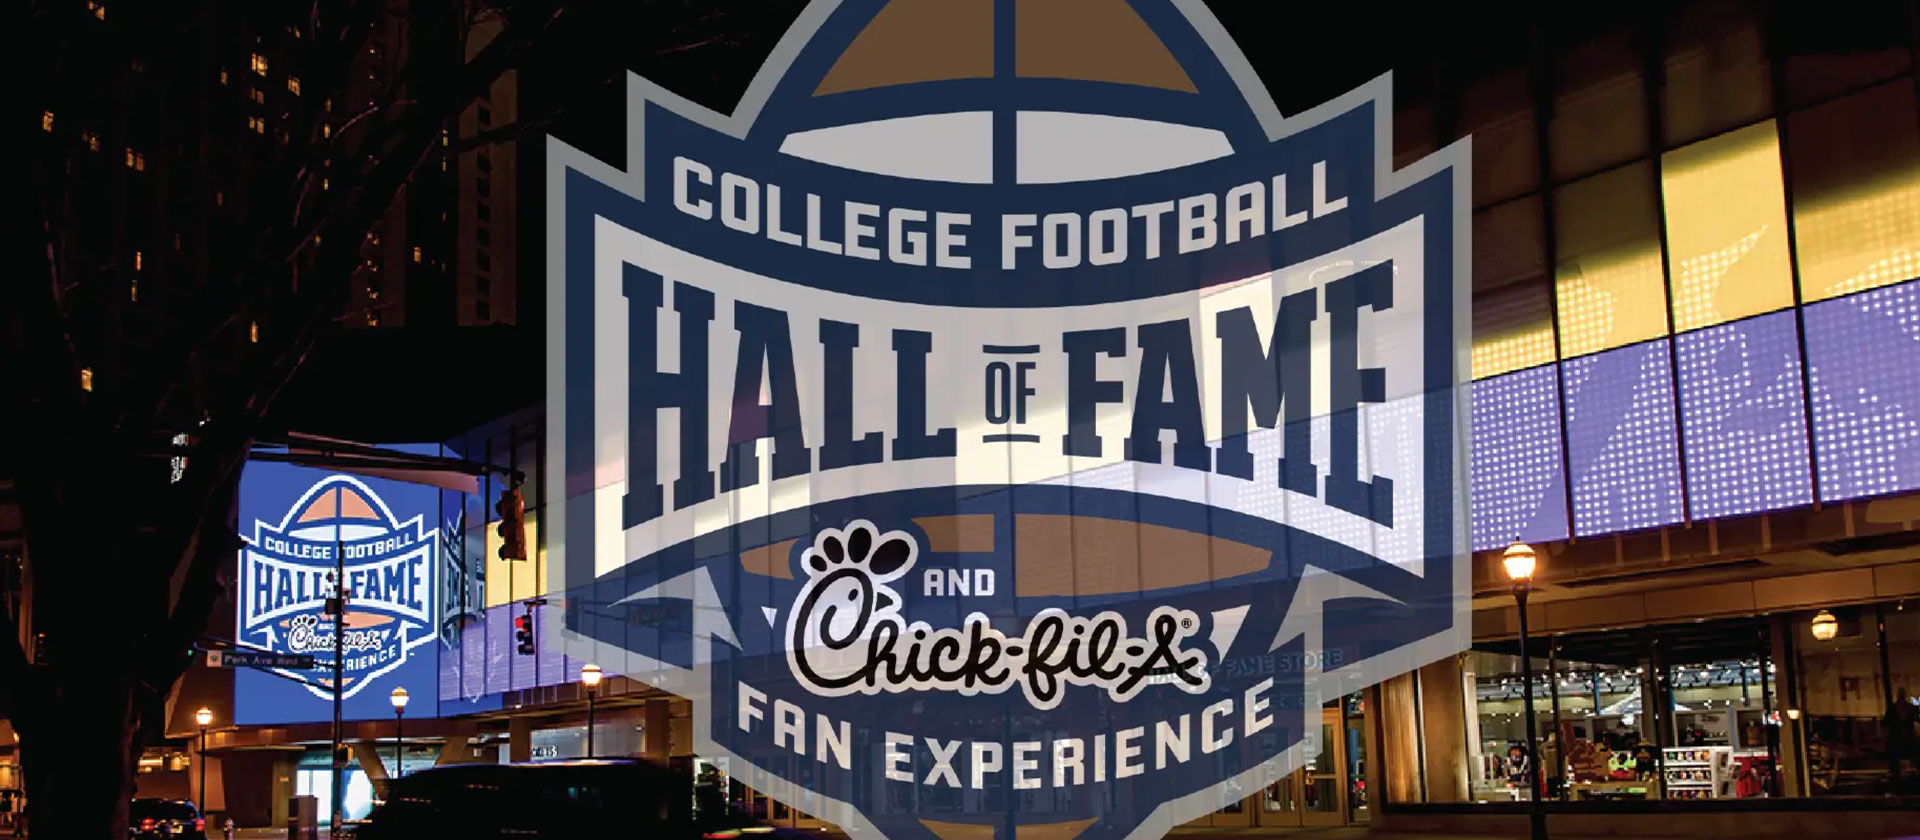 College Football Hall of Fame – Exterior